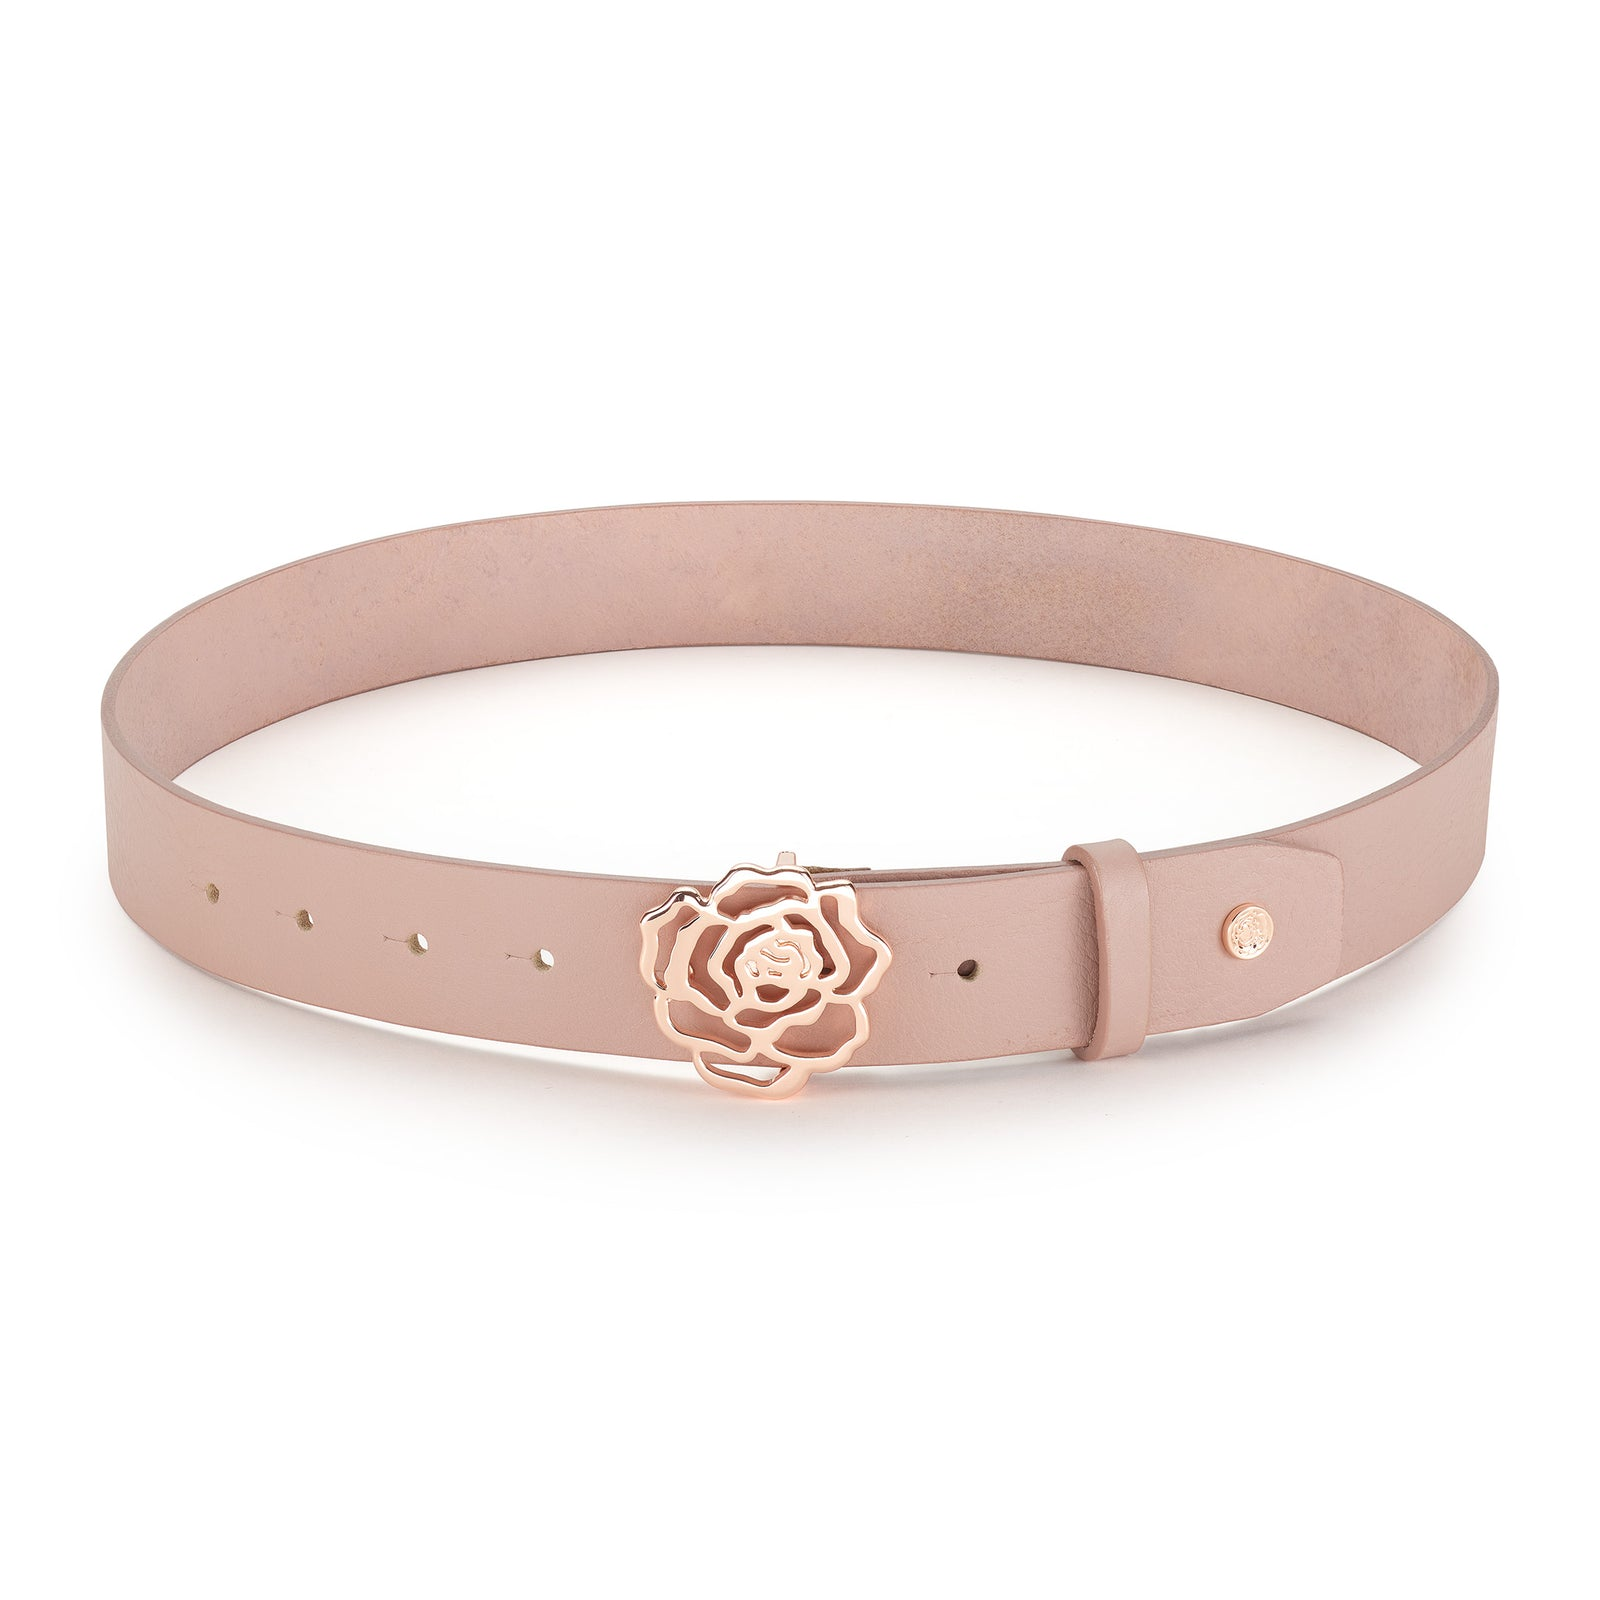 Hannah Childs Rose Buckle Belt  Dusted Rose - Luxe EQ